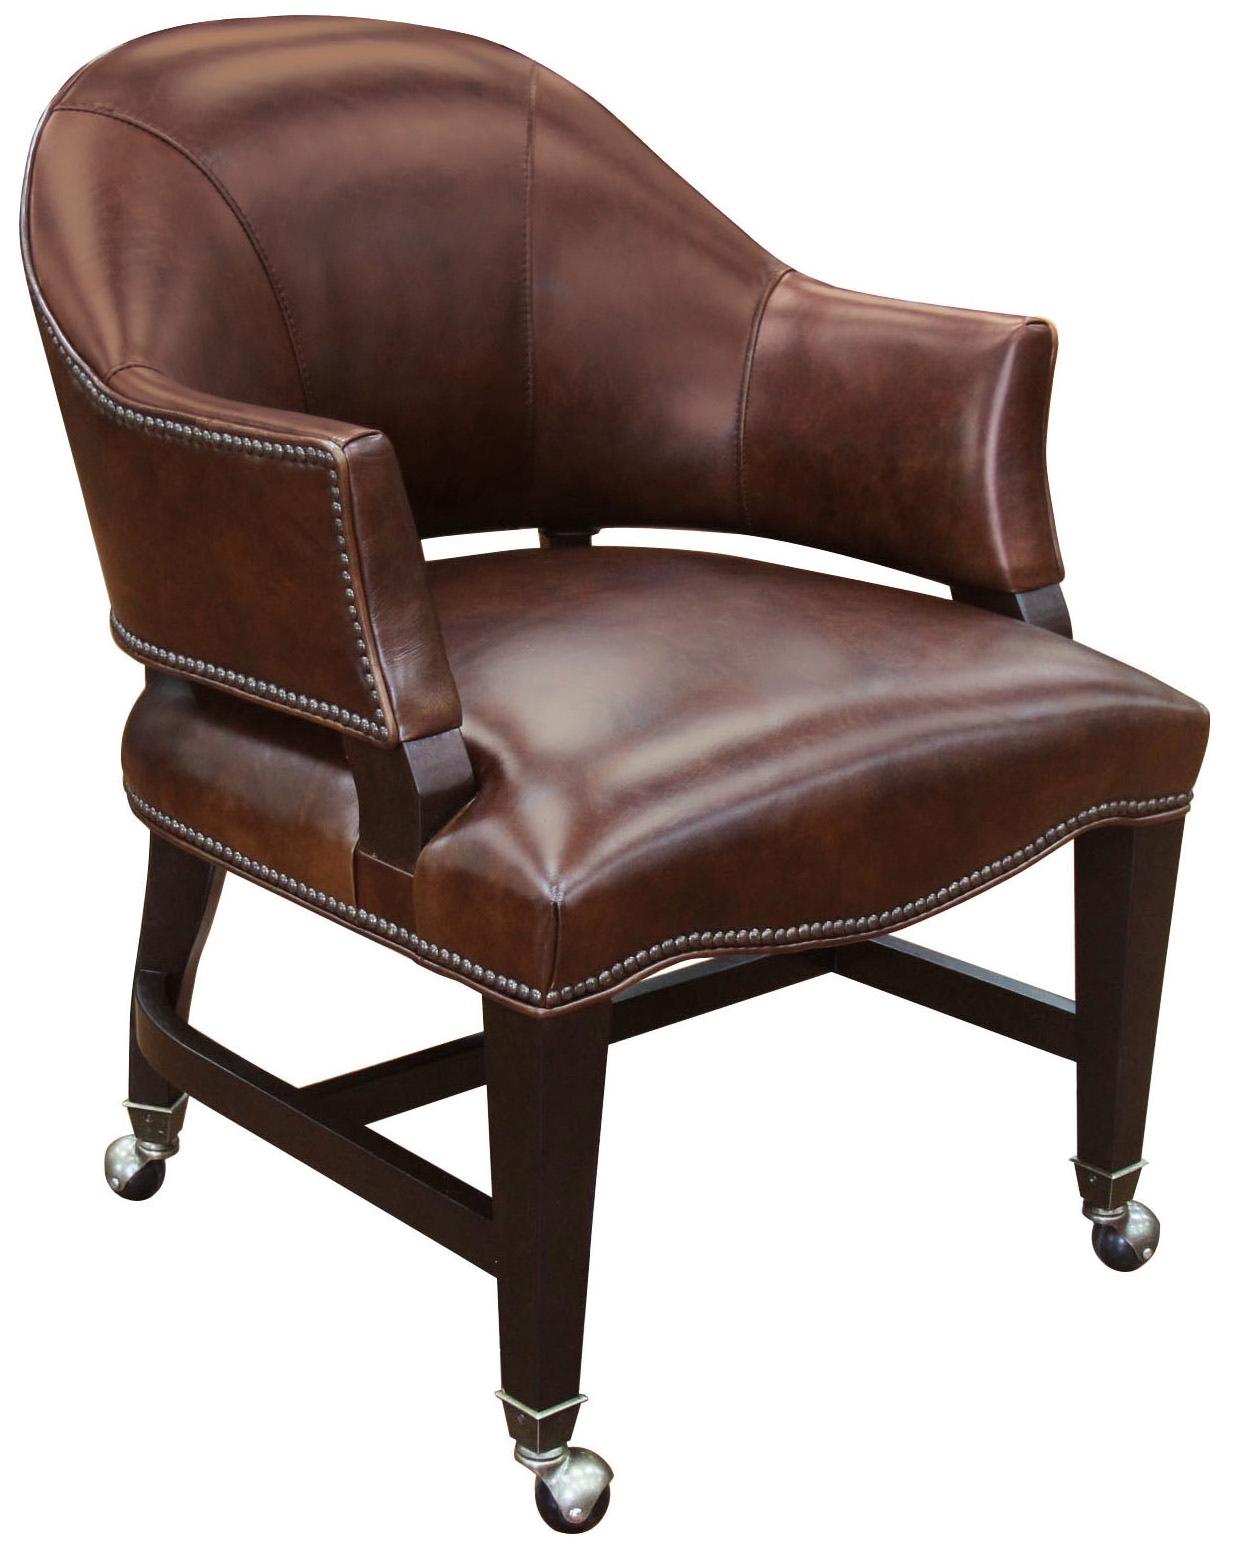 Game Chairs Isadora Nut Game Chair by Hooker Furniture at Baer's Furniture